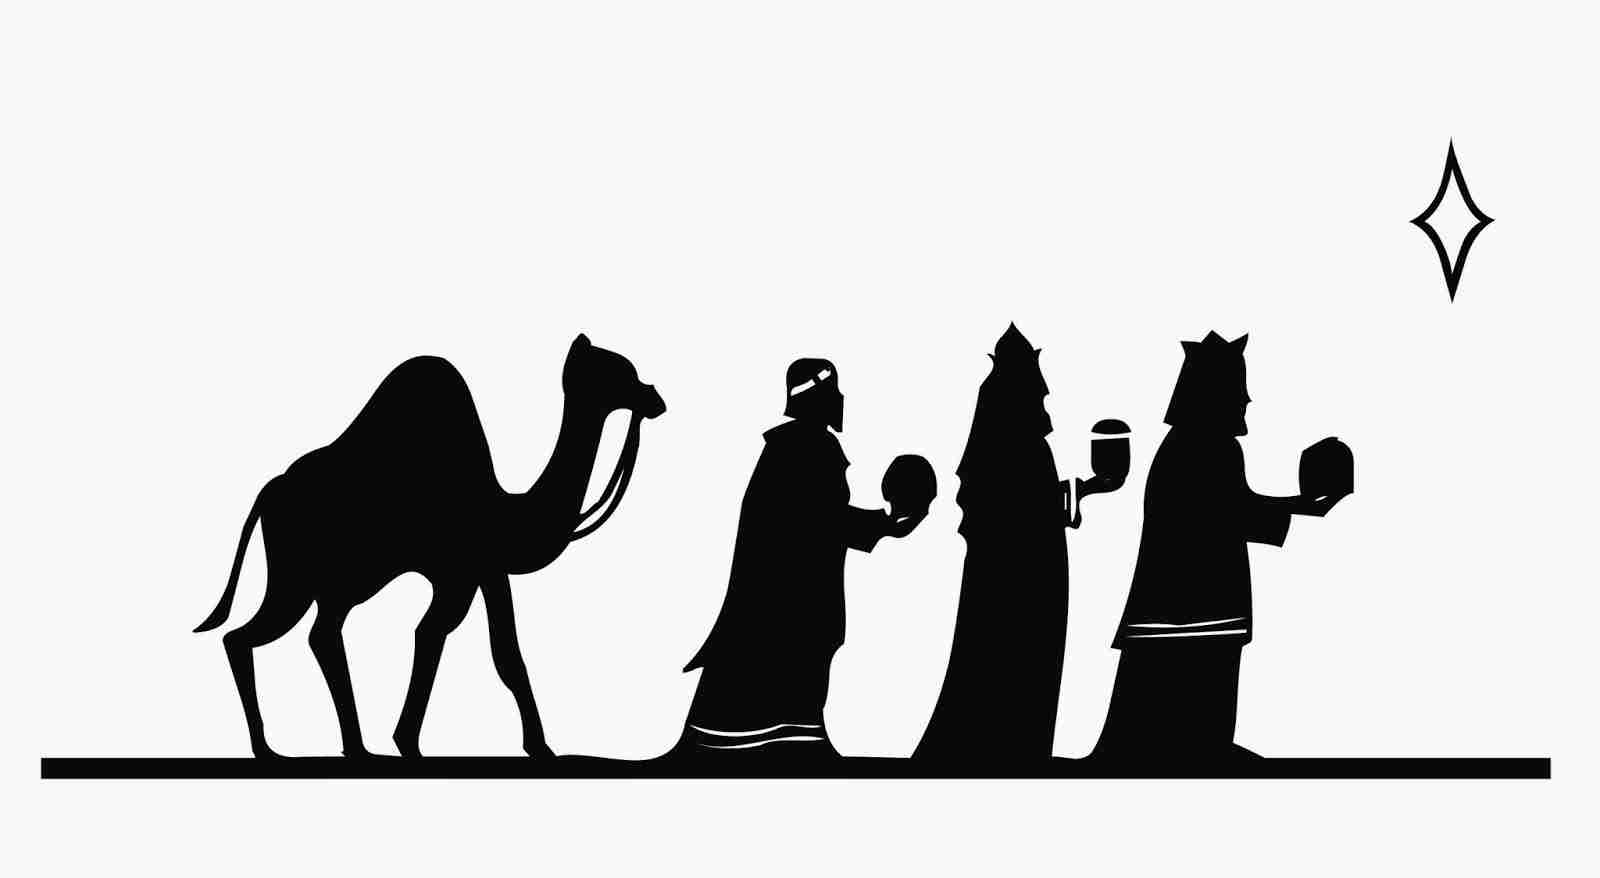 3 Wise Men Silhouette at GetDrawings.com.